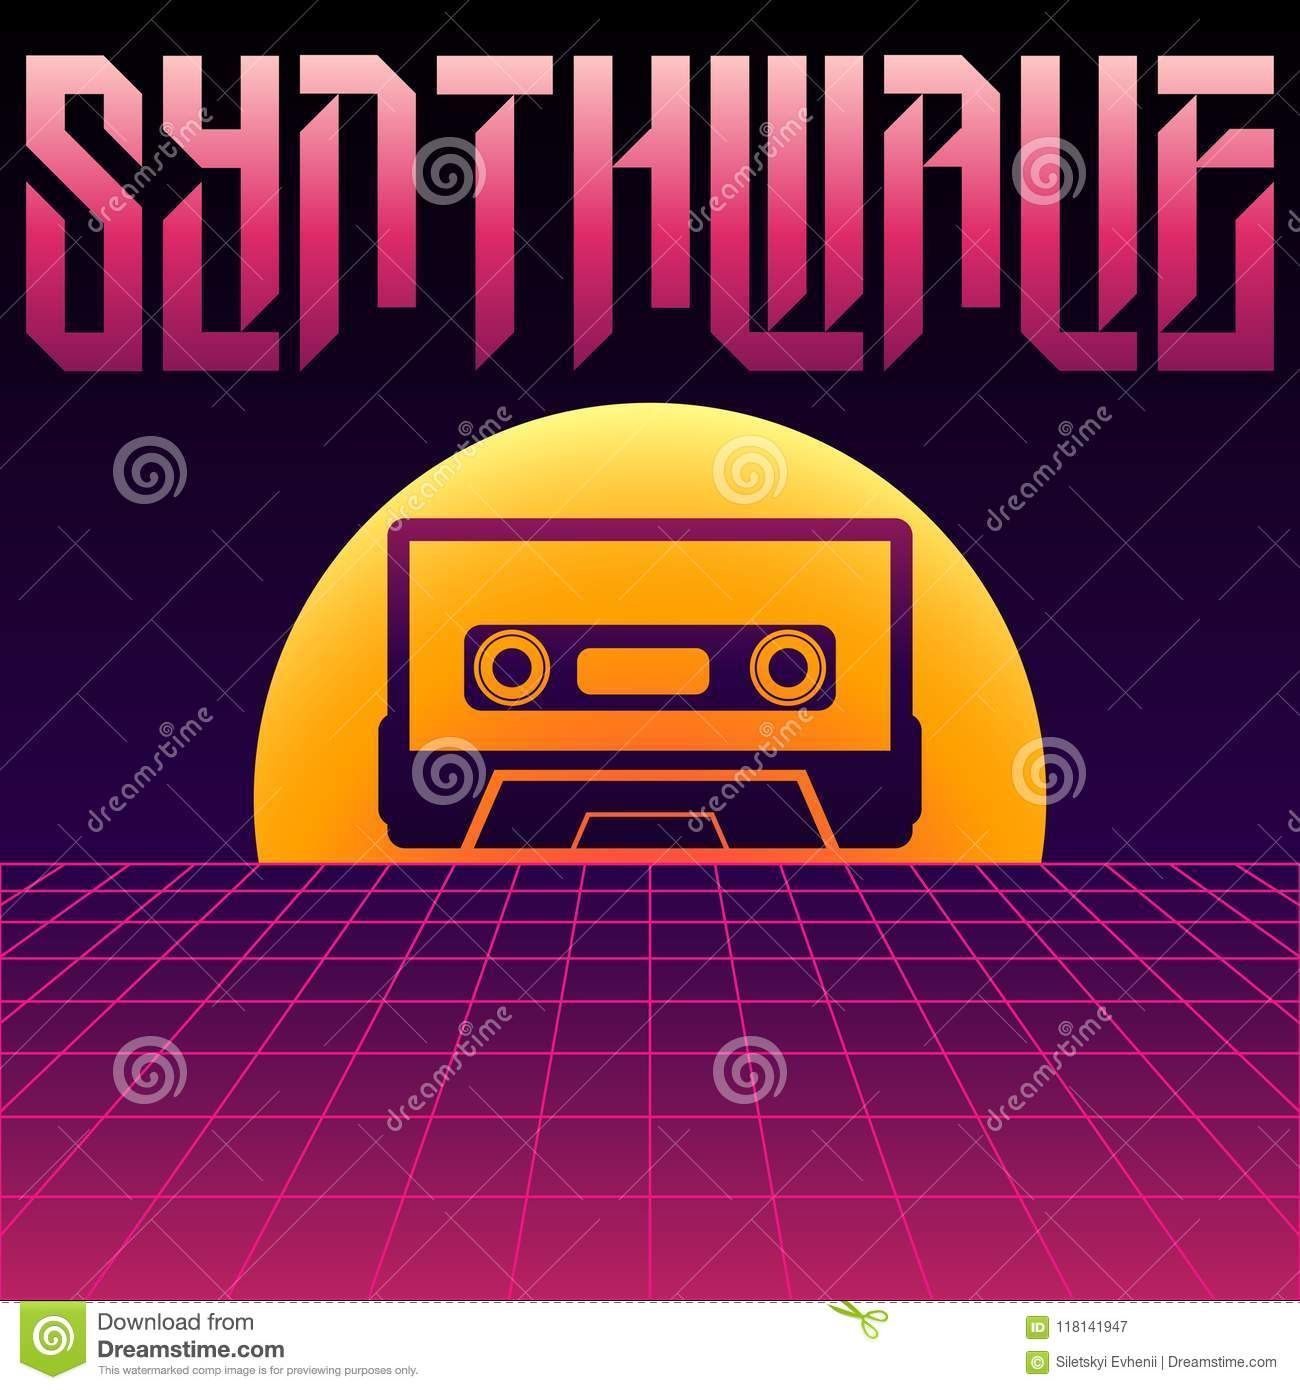 Cassette In Sunset On A Purple Background Andinscription Of